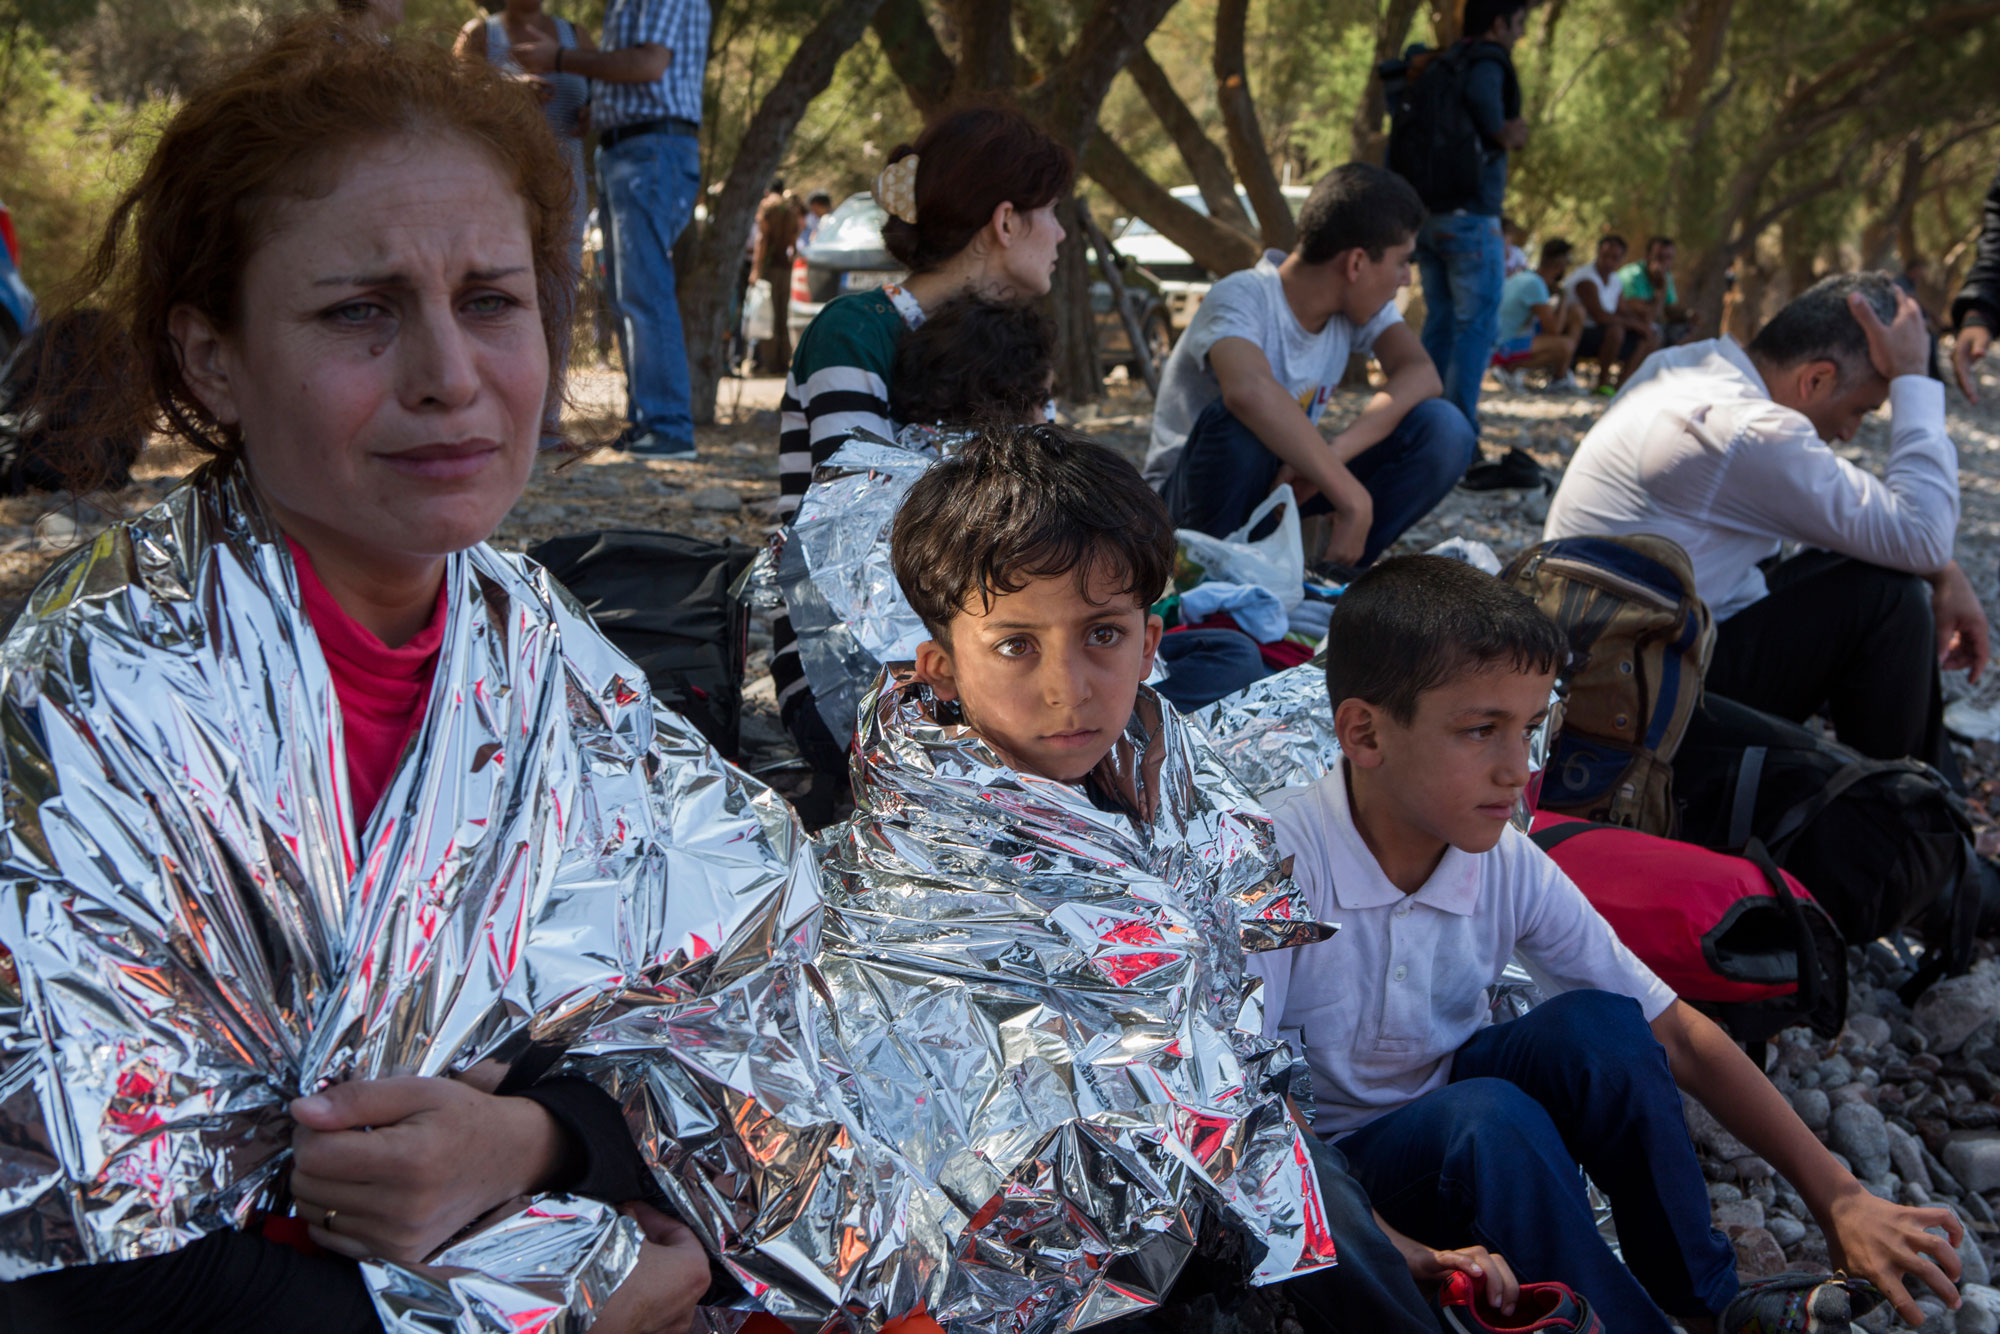 Photographer: Ivor Prickett |6-year-old Syrian refugee Sarwan from Kobane sits alongside his mother and brother wrapped in an emergency blanket moments after the family had a terrifying end to their journey to Lesbos.  The boat they were in burst and many of those onboard had to jump into the sea and swim ashore.